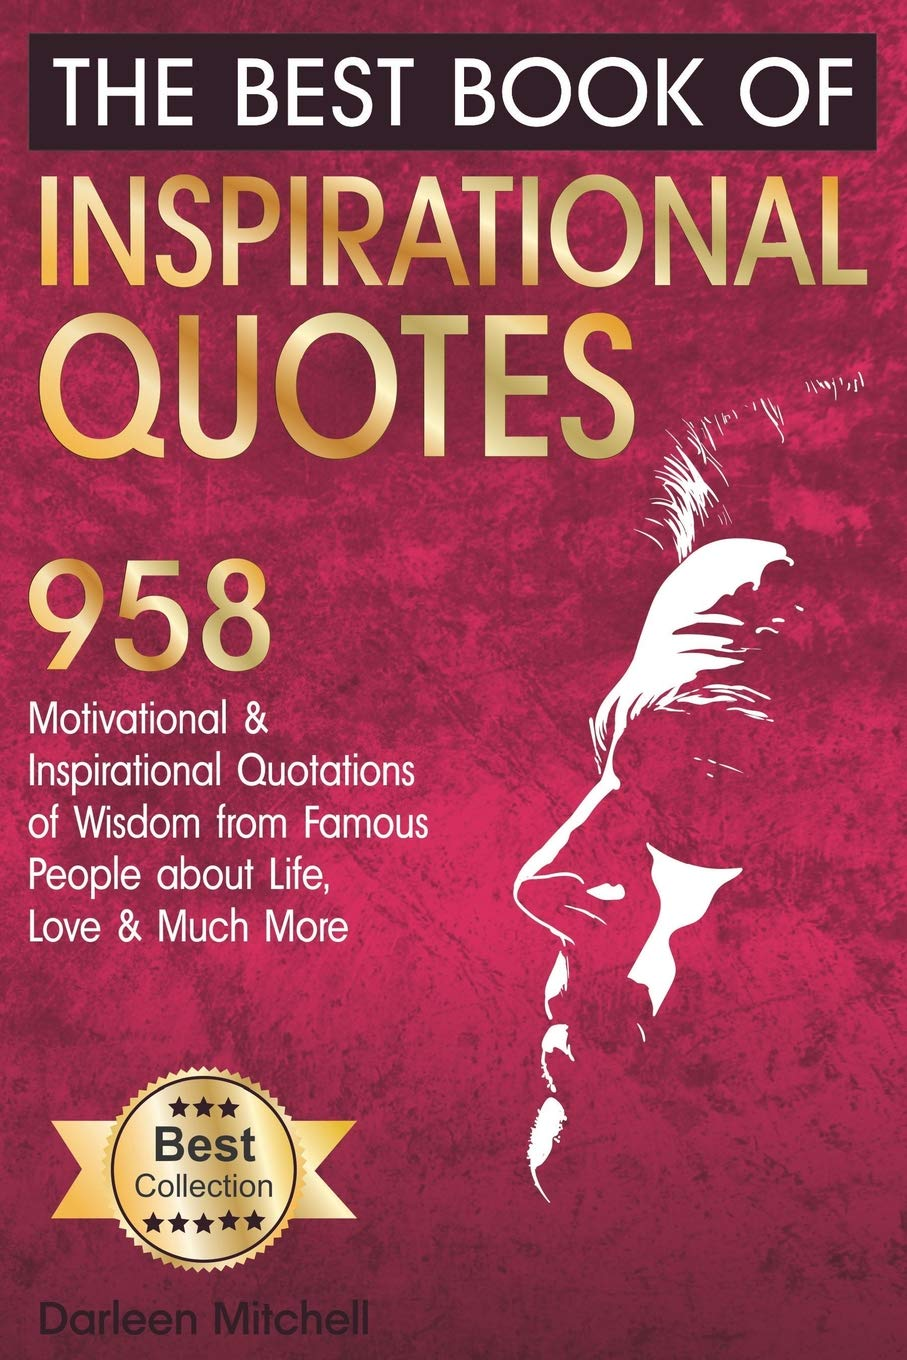 The Best Book of Inspirational Quotes: 958 Motivational and ...